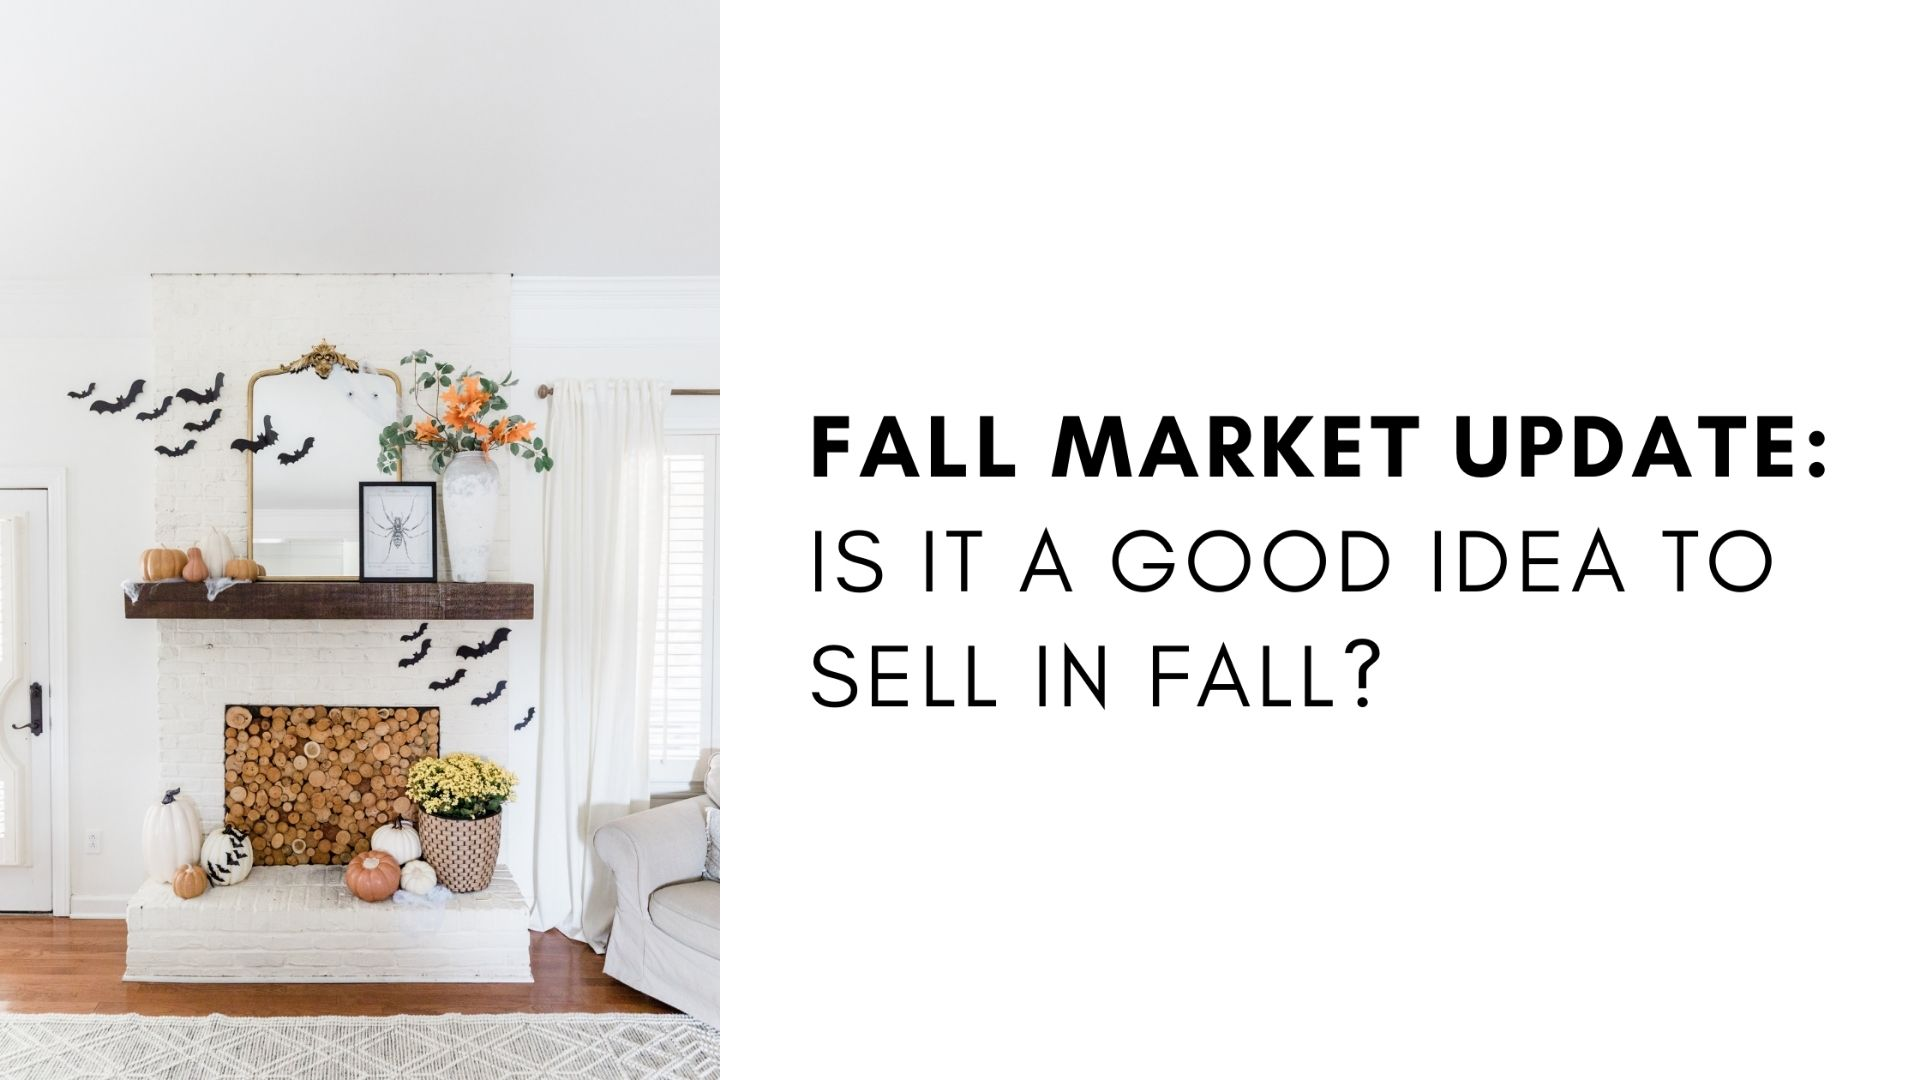 Fall Market Update: Is the Fall a Good Time to Sell? Main Photo